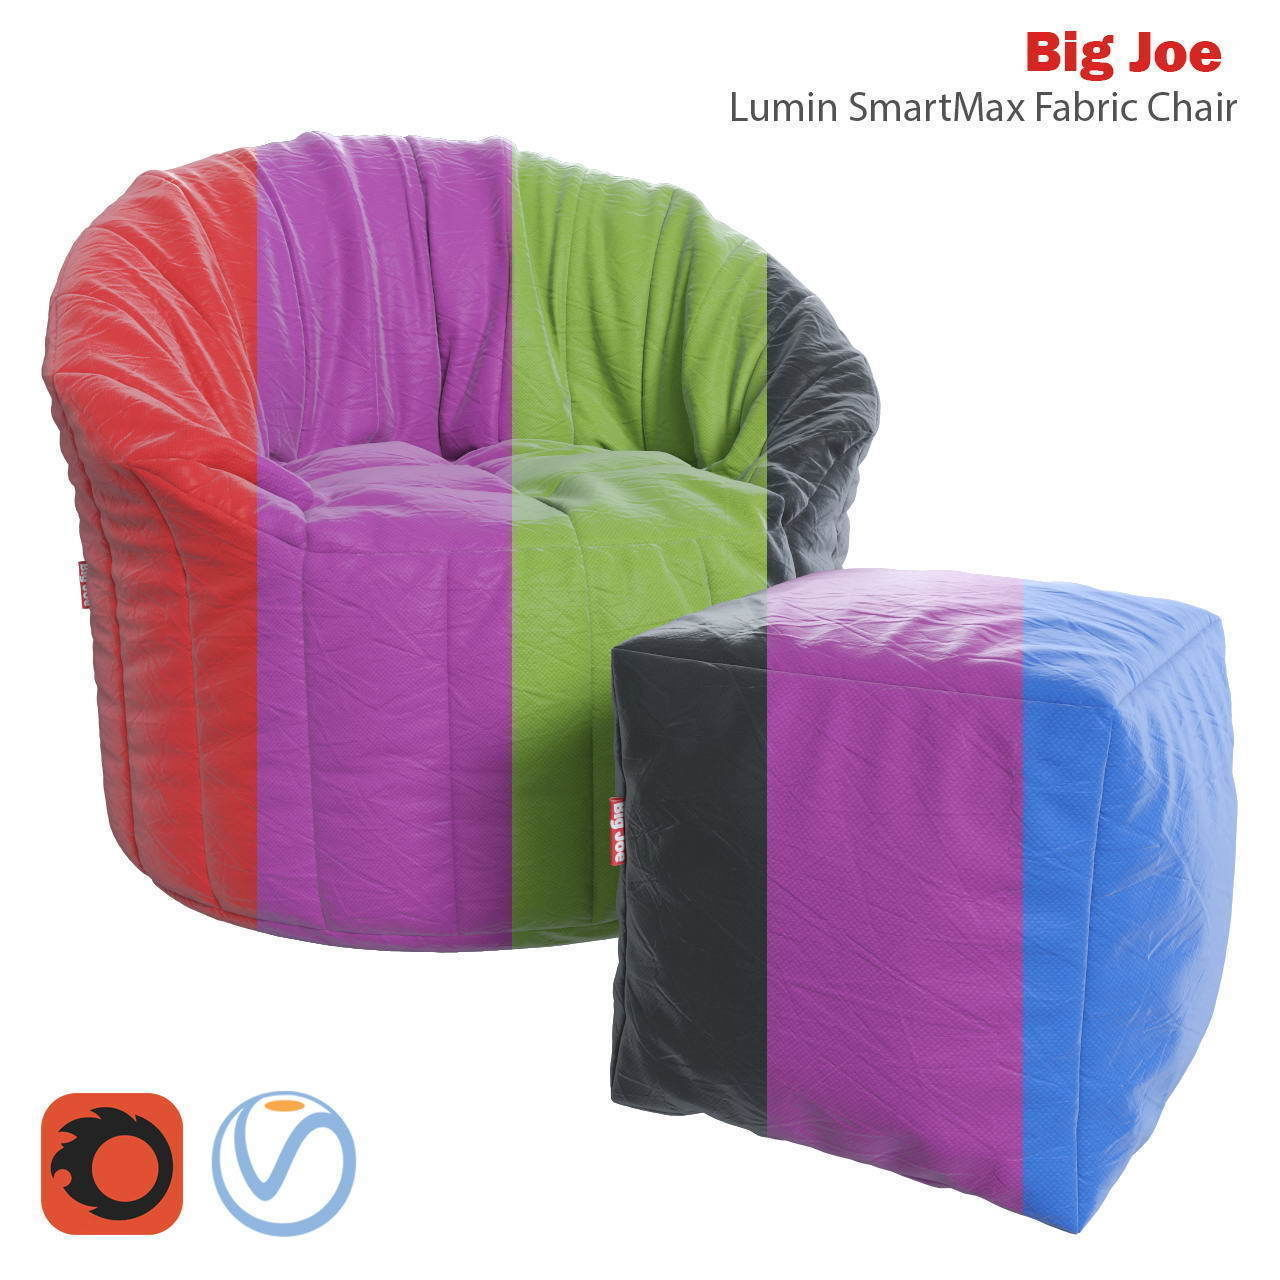 Enjoyable Big Joe Lumin Smartmax Fabric Chair And Ottoman 3D Model Cjindustries Chair Design For Home Cjindustriesco